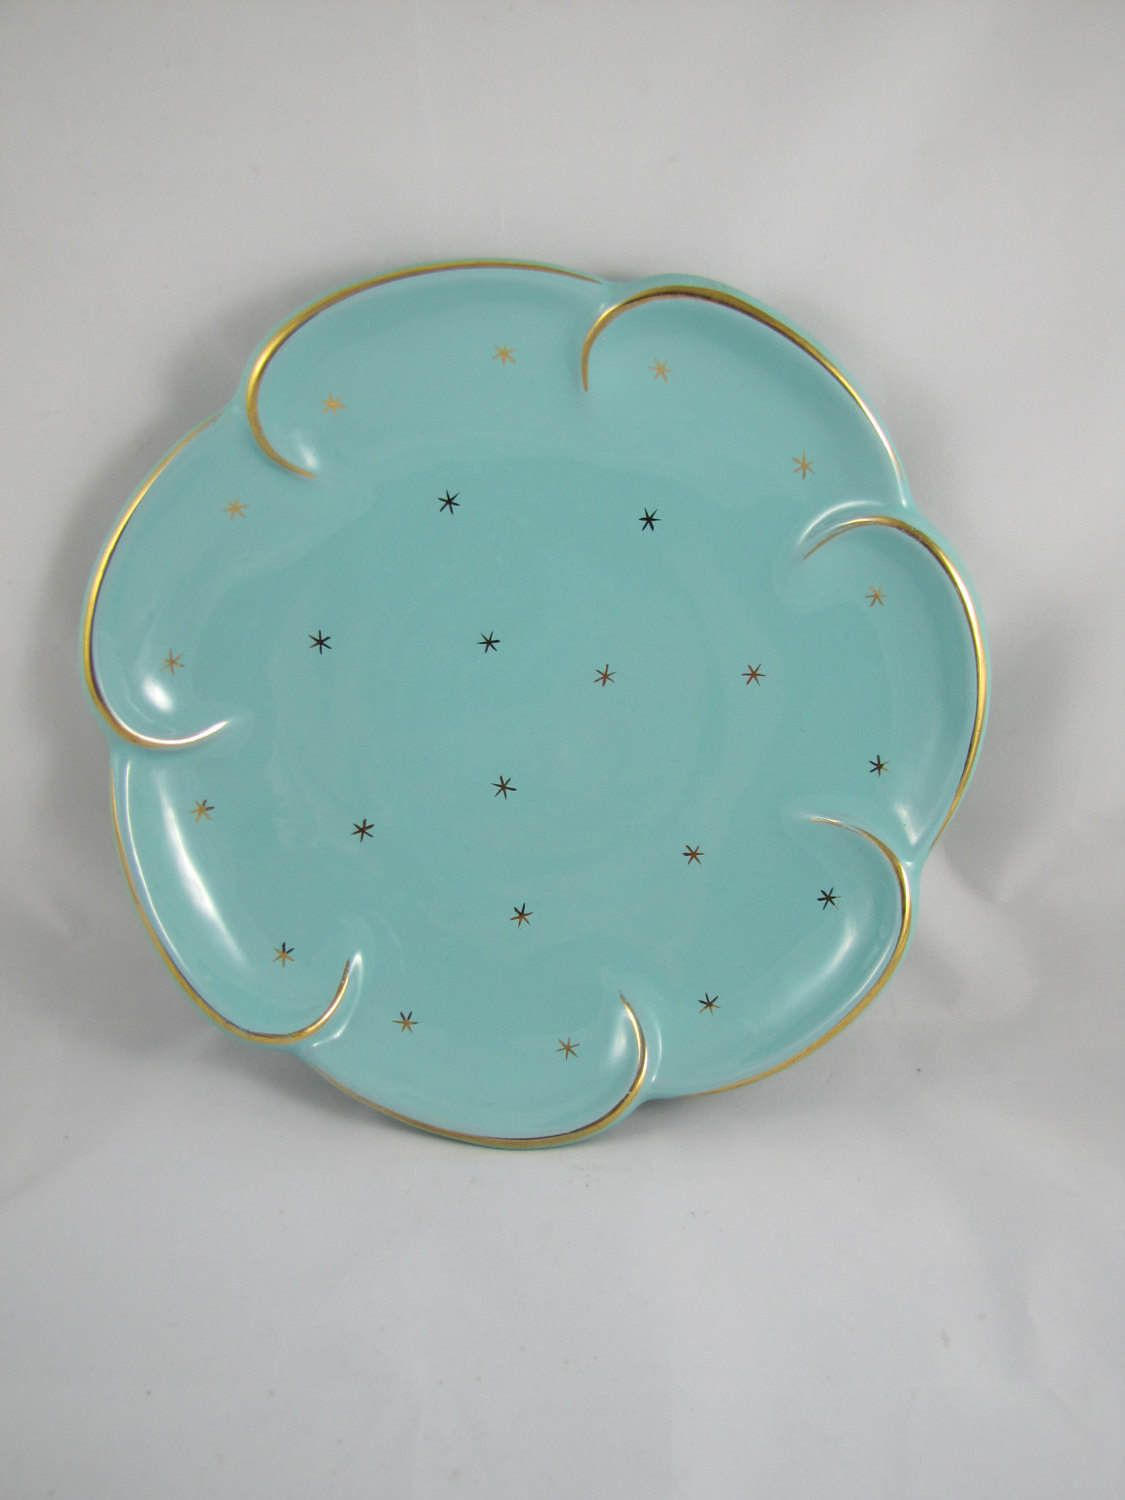 Turquoise Decorative Bowl Vintage Turquoise And Gold Mid Century Bowl Gold Starburst